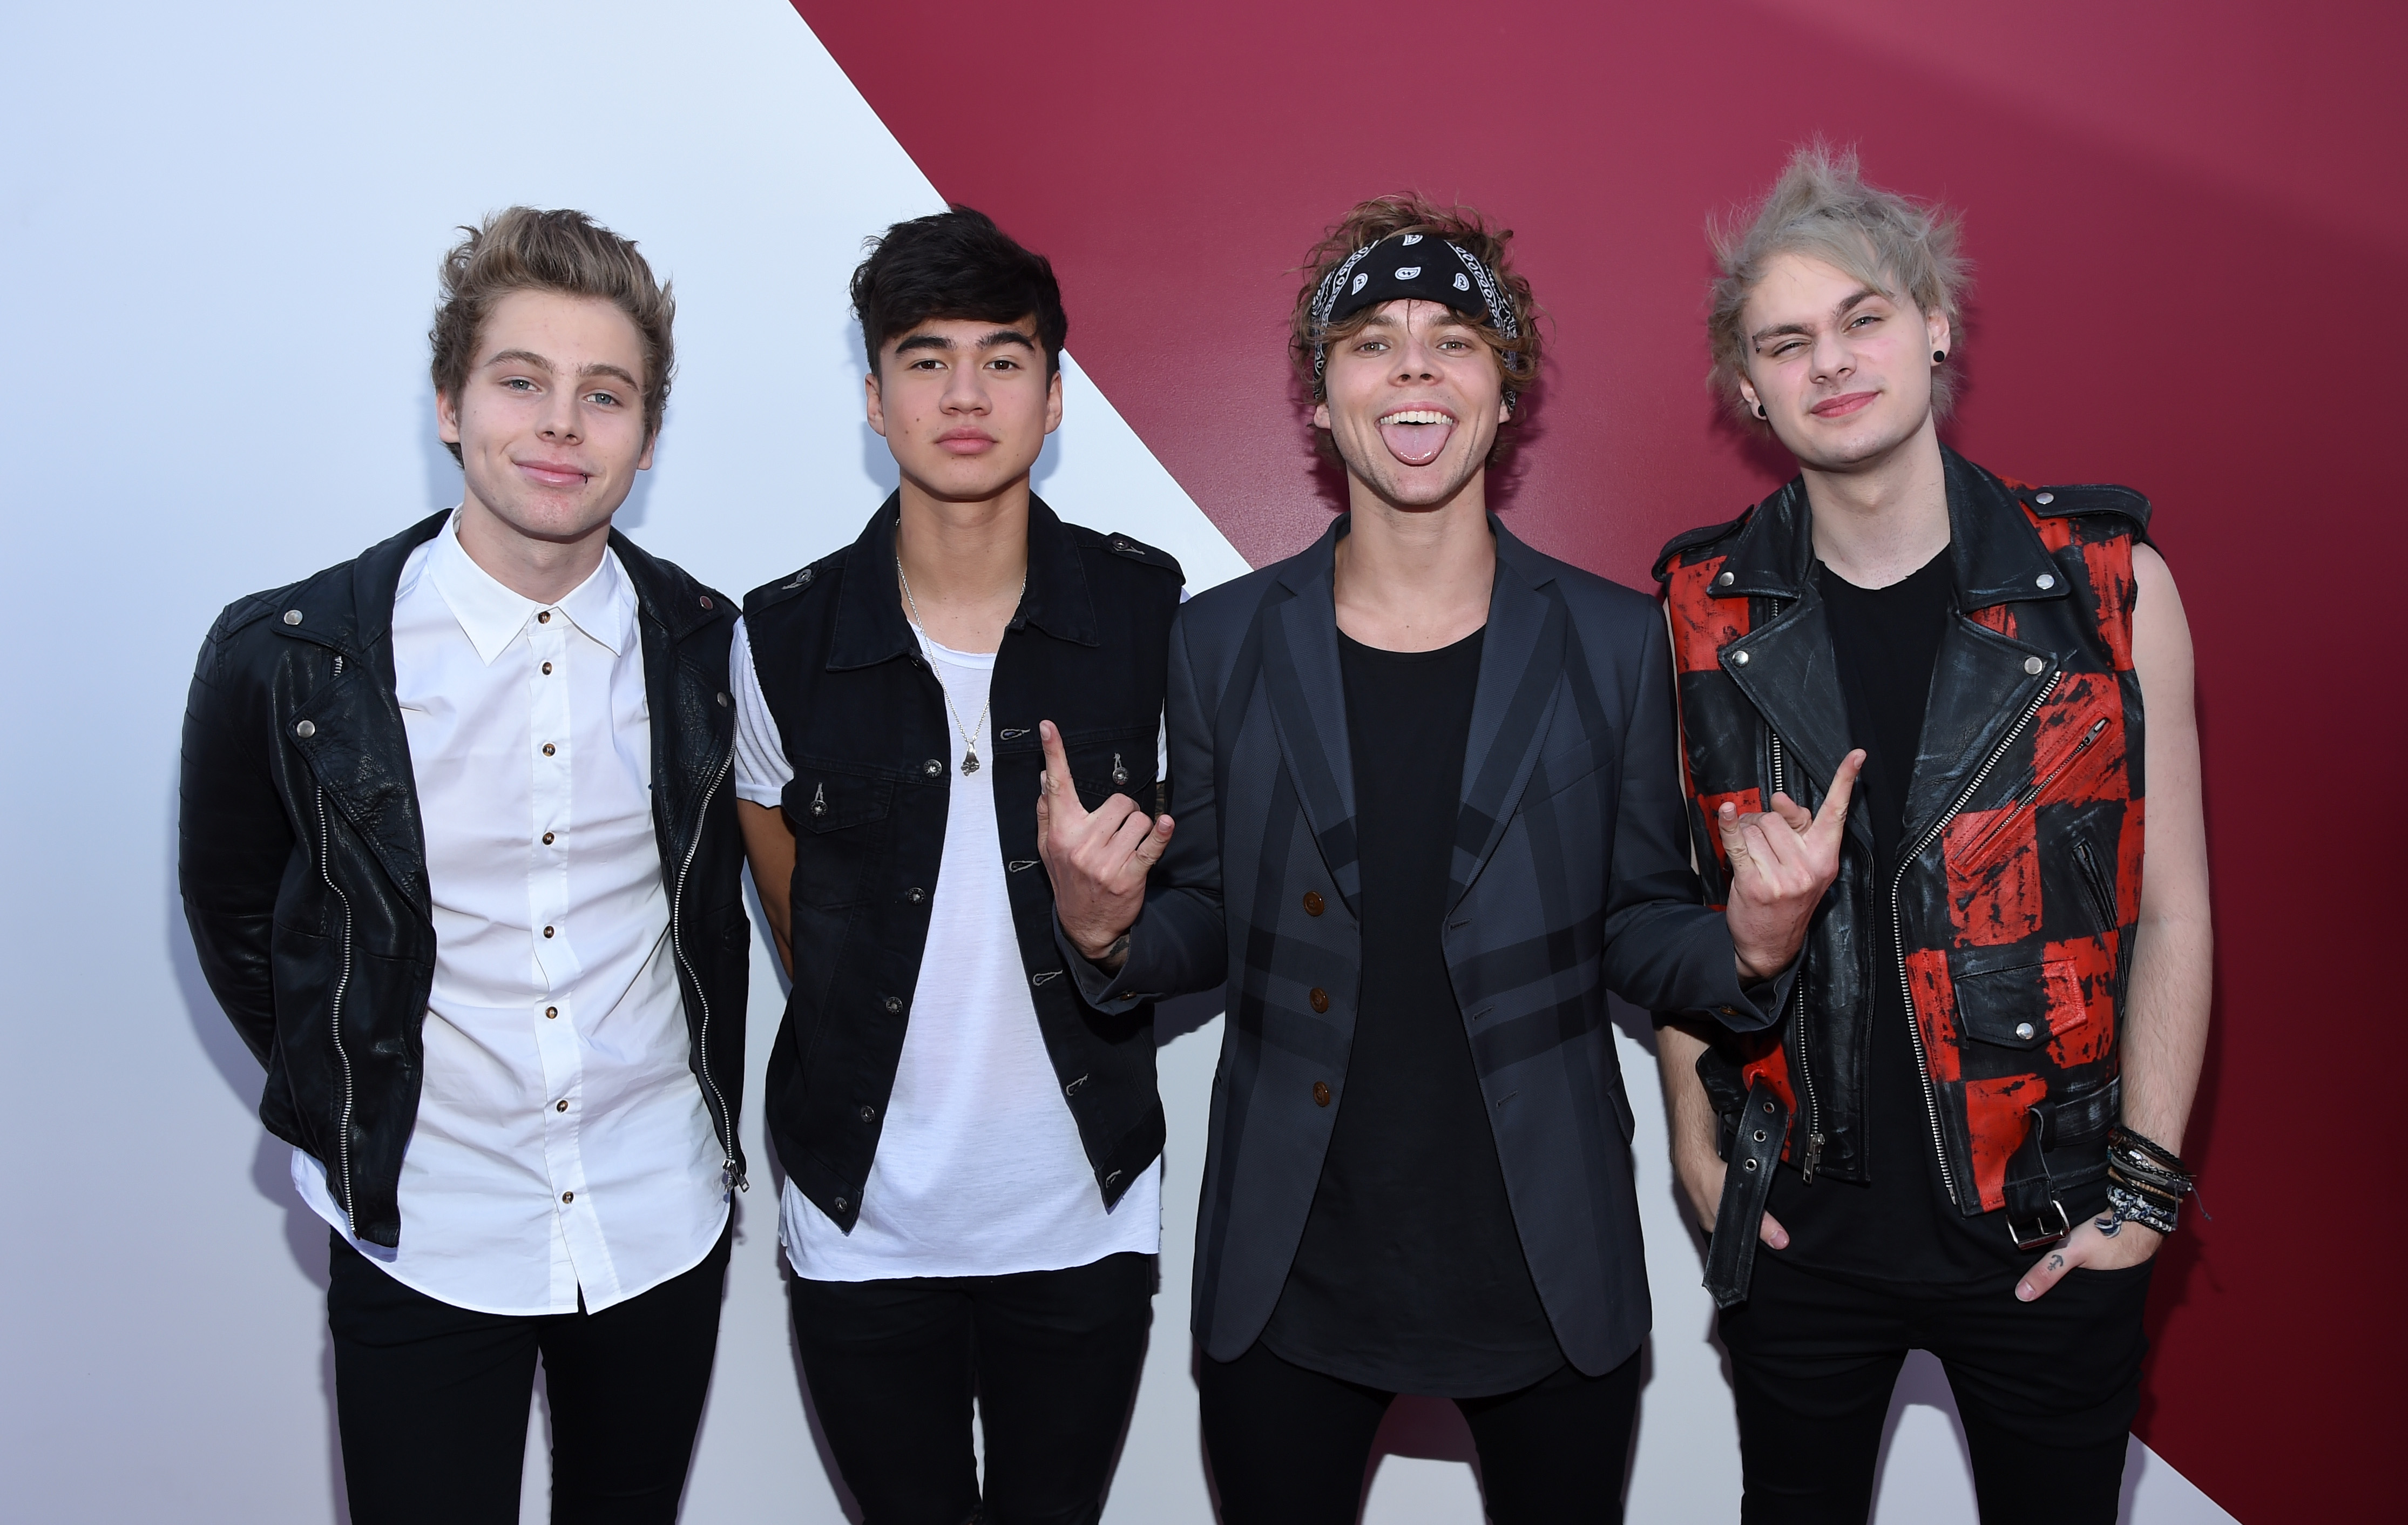 five seconds of summer Calum thomas hood (born january 25, 1996), is the bassist and vocalist of 5 seconds of summer, along with band members luke hemmings, ashton irwin, and.